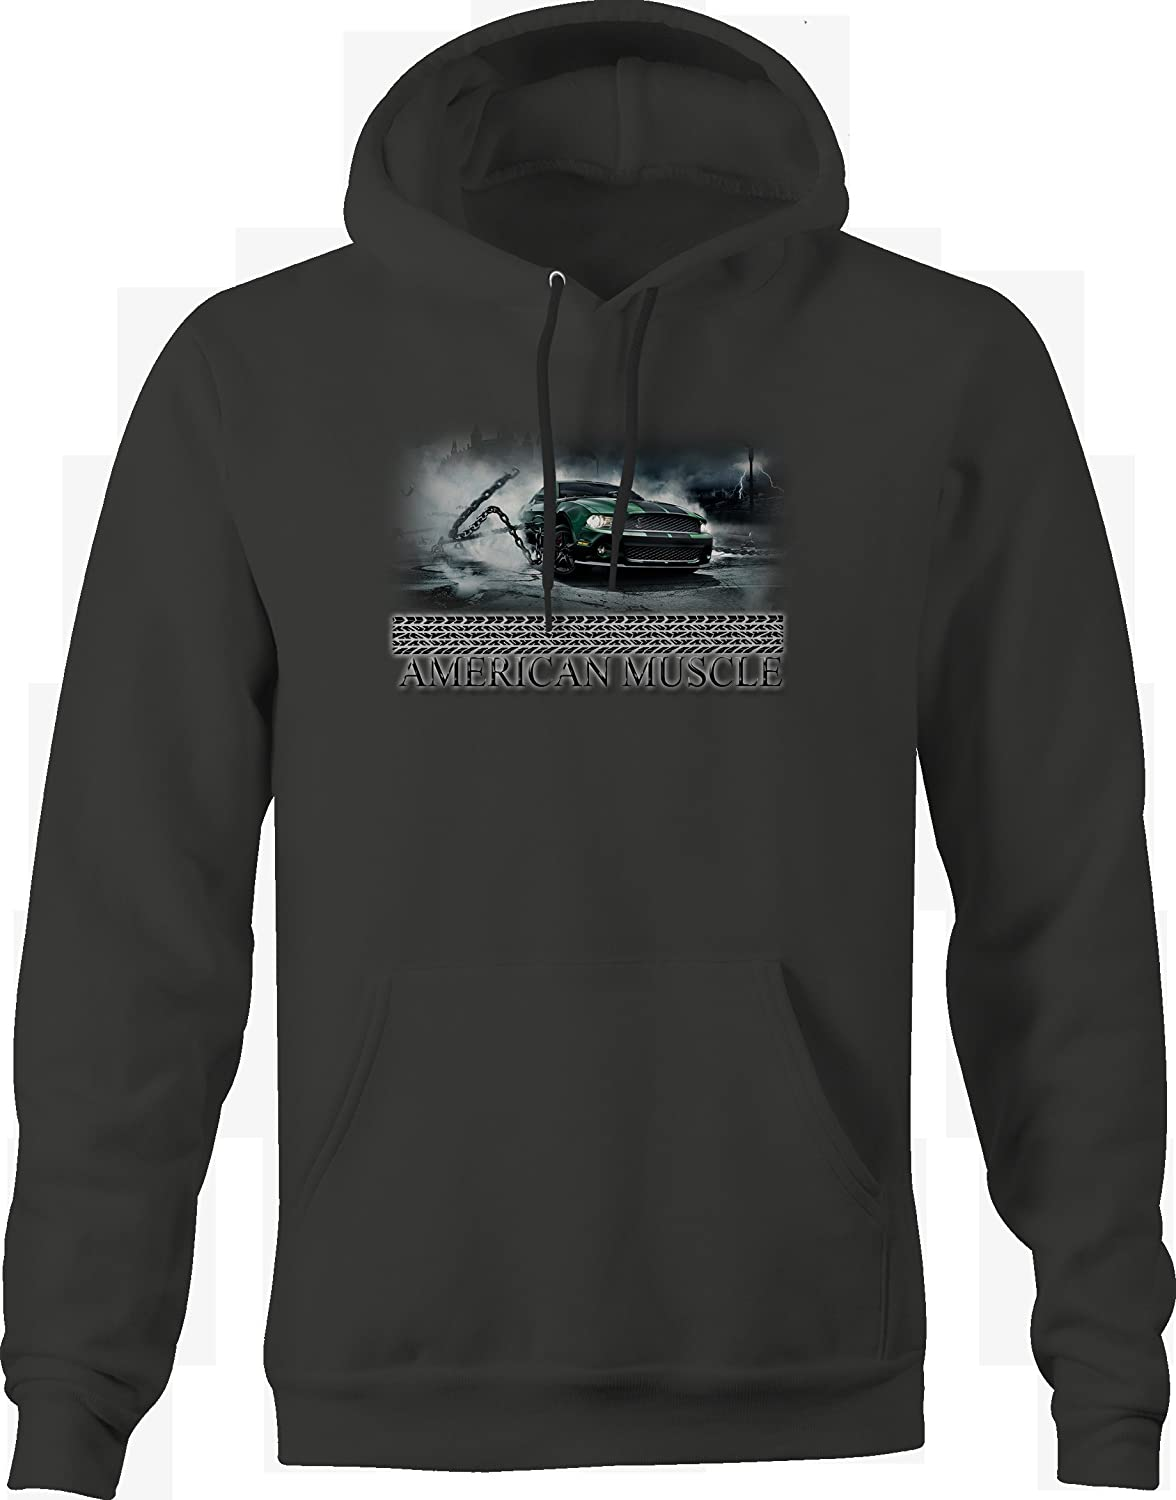 American Muscle Mustang Cobra Green Breaking Chains Graphic Hoodie for Men